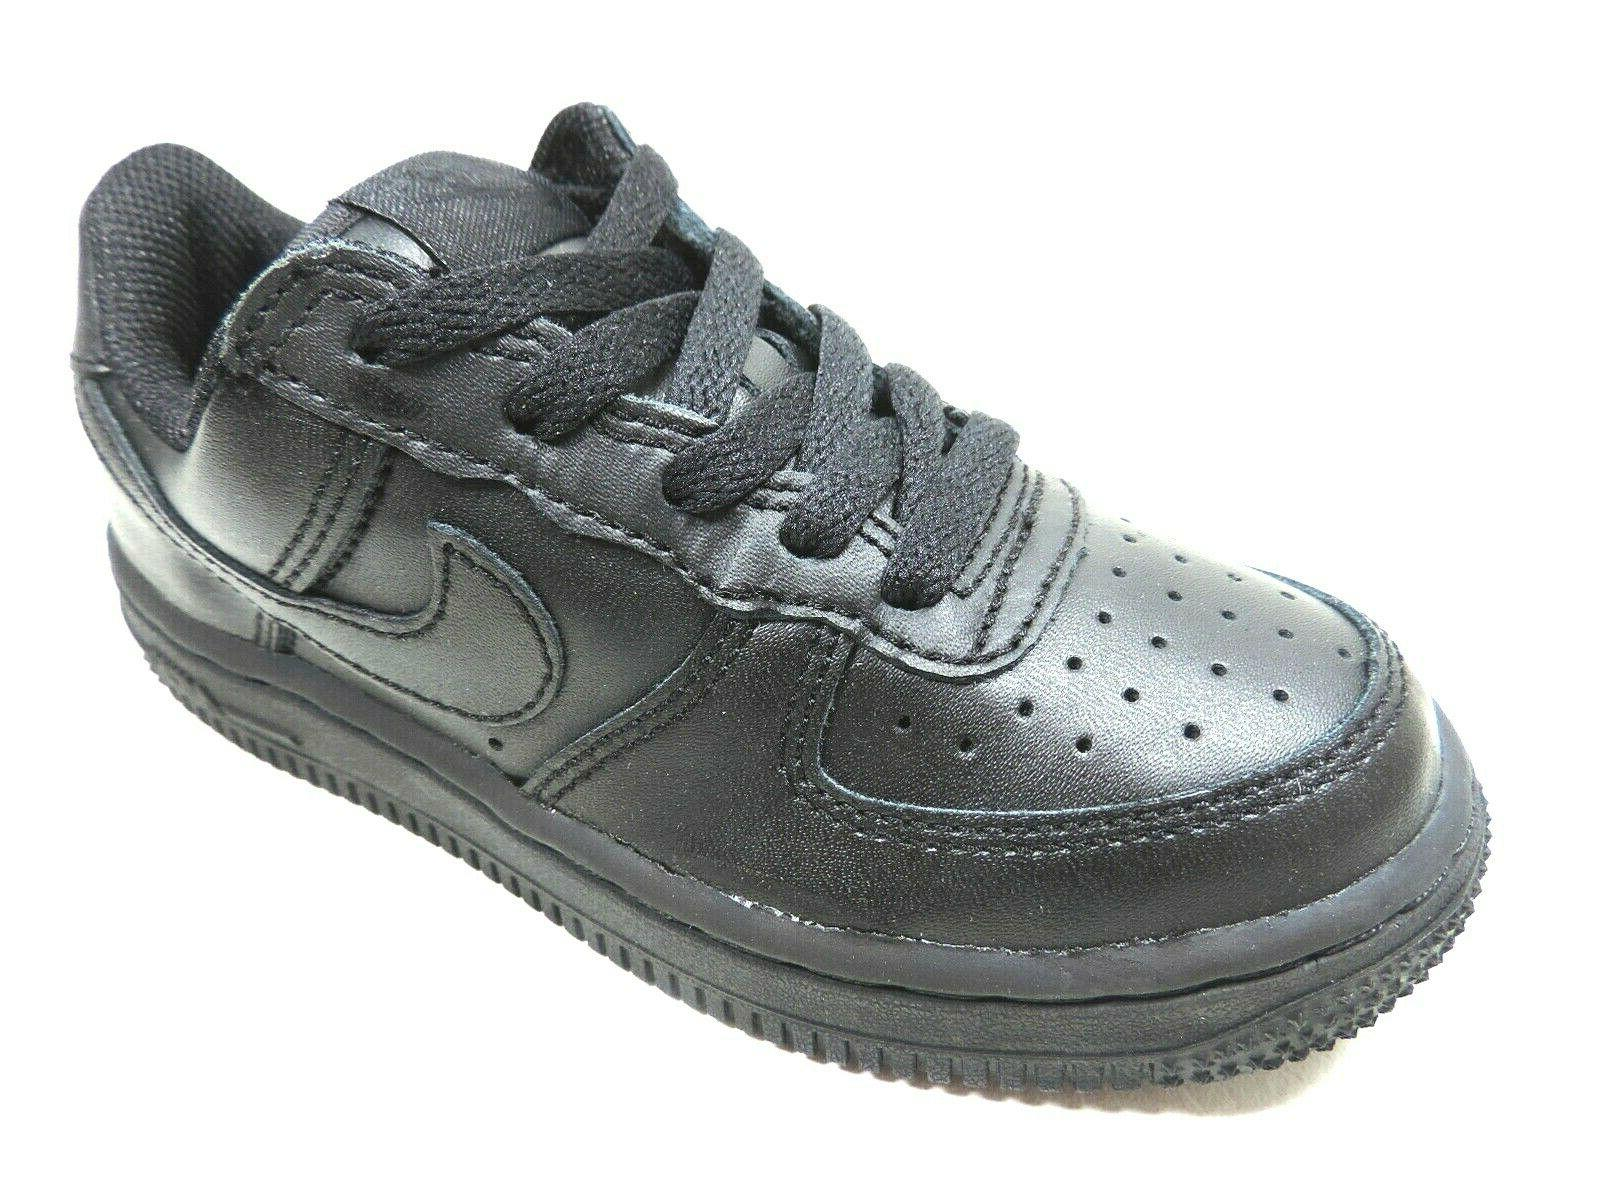 Nike Force One 1 PS 308936/314193 Boys Shoes Sneakers Leathe